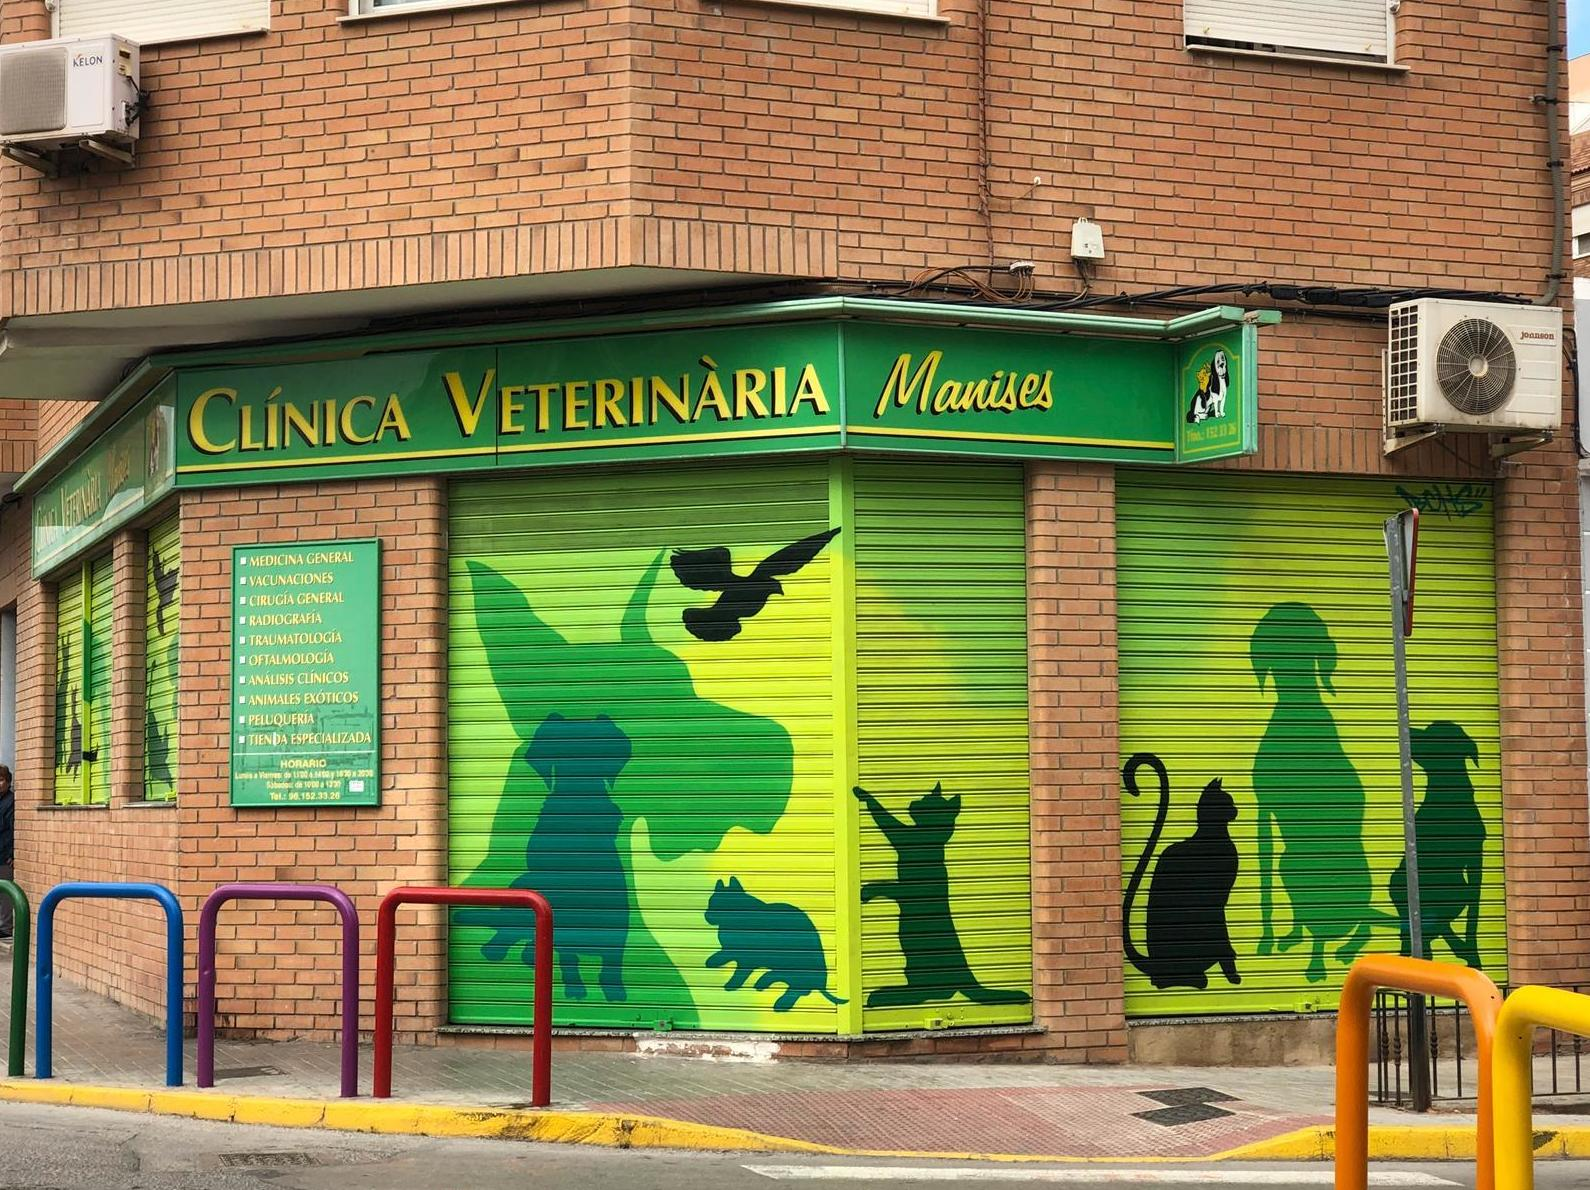 clinica veterinaria manises